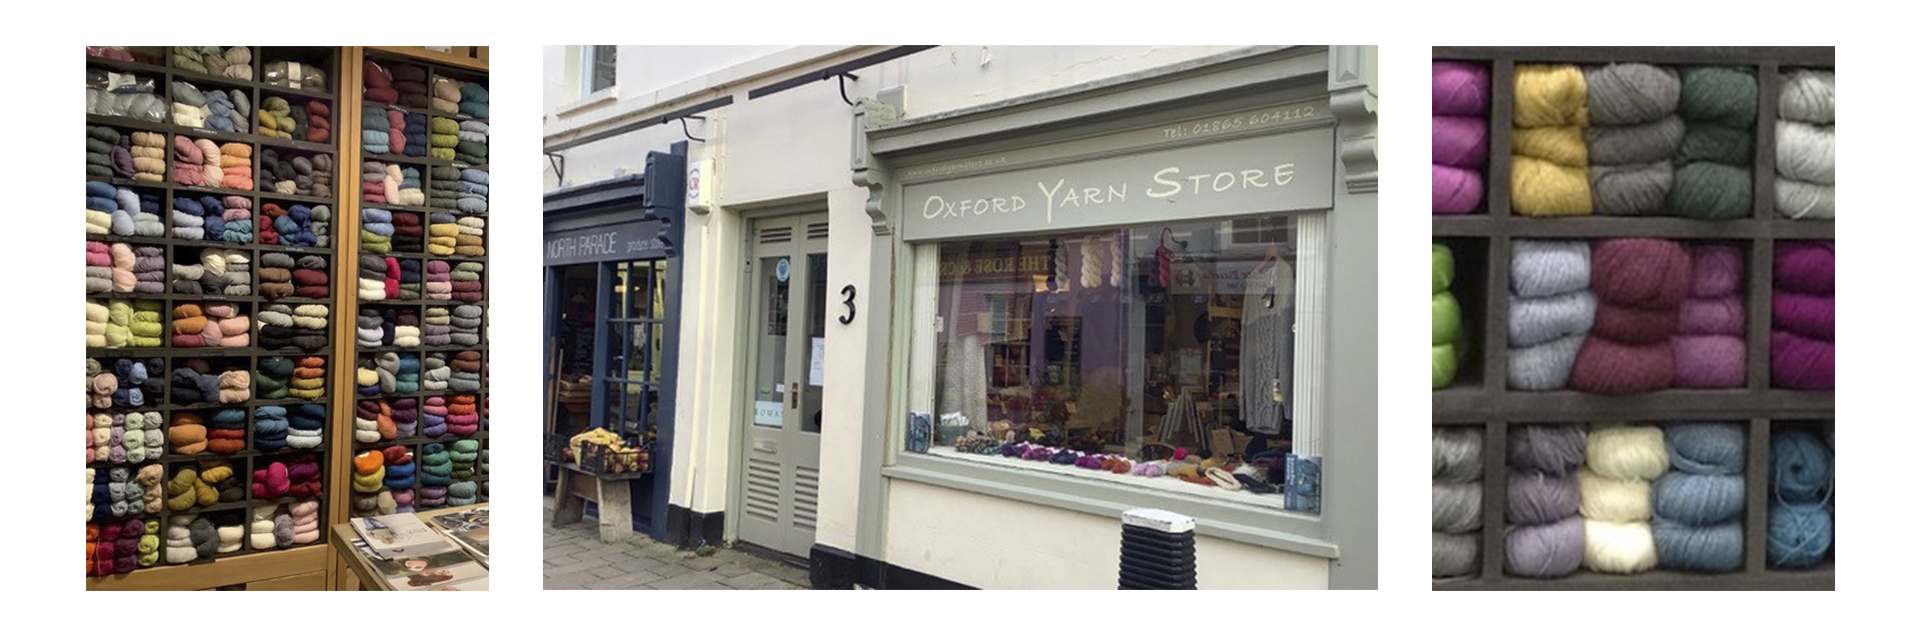 Oxford Yarn Store is a delightful destination store located in the vibrant North Parade Avenue since 2012. It has become the heart of Oxford's knitting community and attracts visitors from all over the world. Proud to be a Rowan Flagship Store, we and our customers love all of Rowan's yarns and find the range of exciting pattern options  from their designers works for all types of knitters.